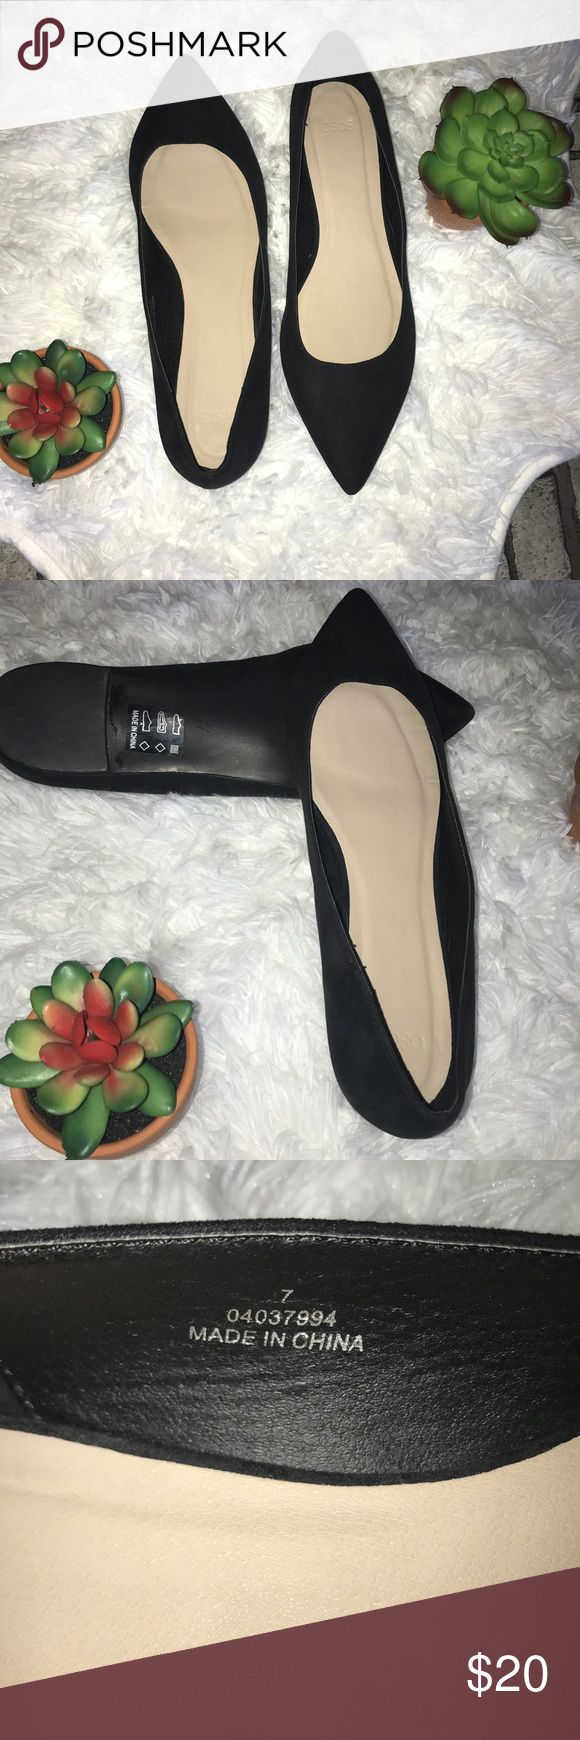 ASOS pointed toe suede black ballet flats 9 ASOS suede pointed toe ballet flats. Barely worn. UK size 7 US size 9 women's. Great for fall. Slip one. Asos Shoes Flats & Loafers